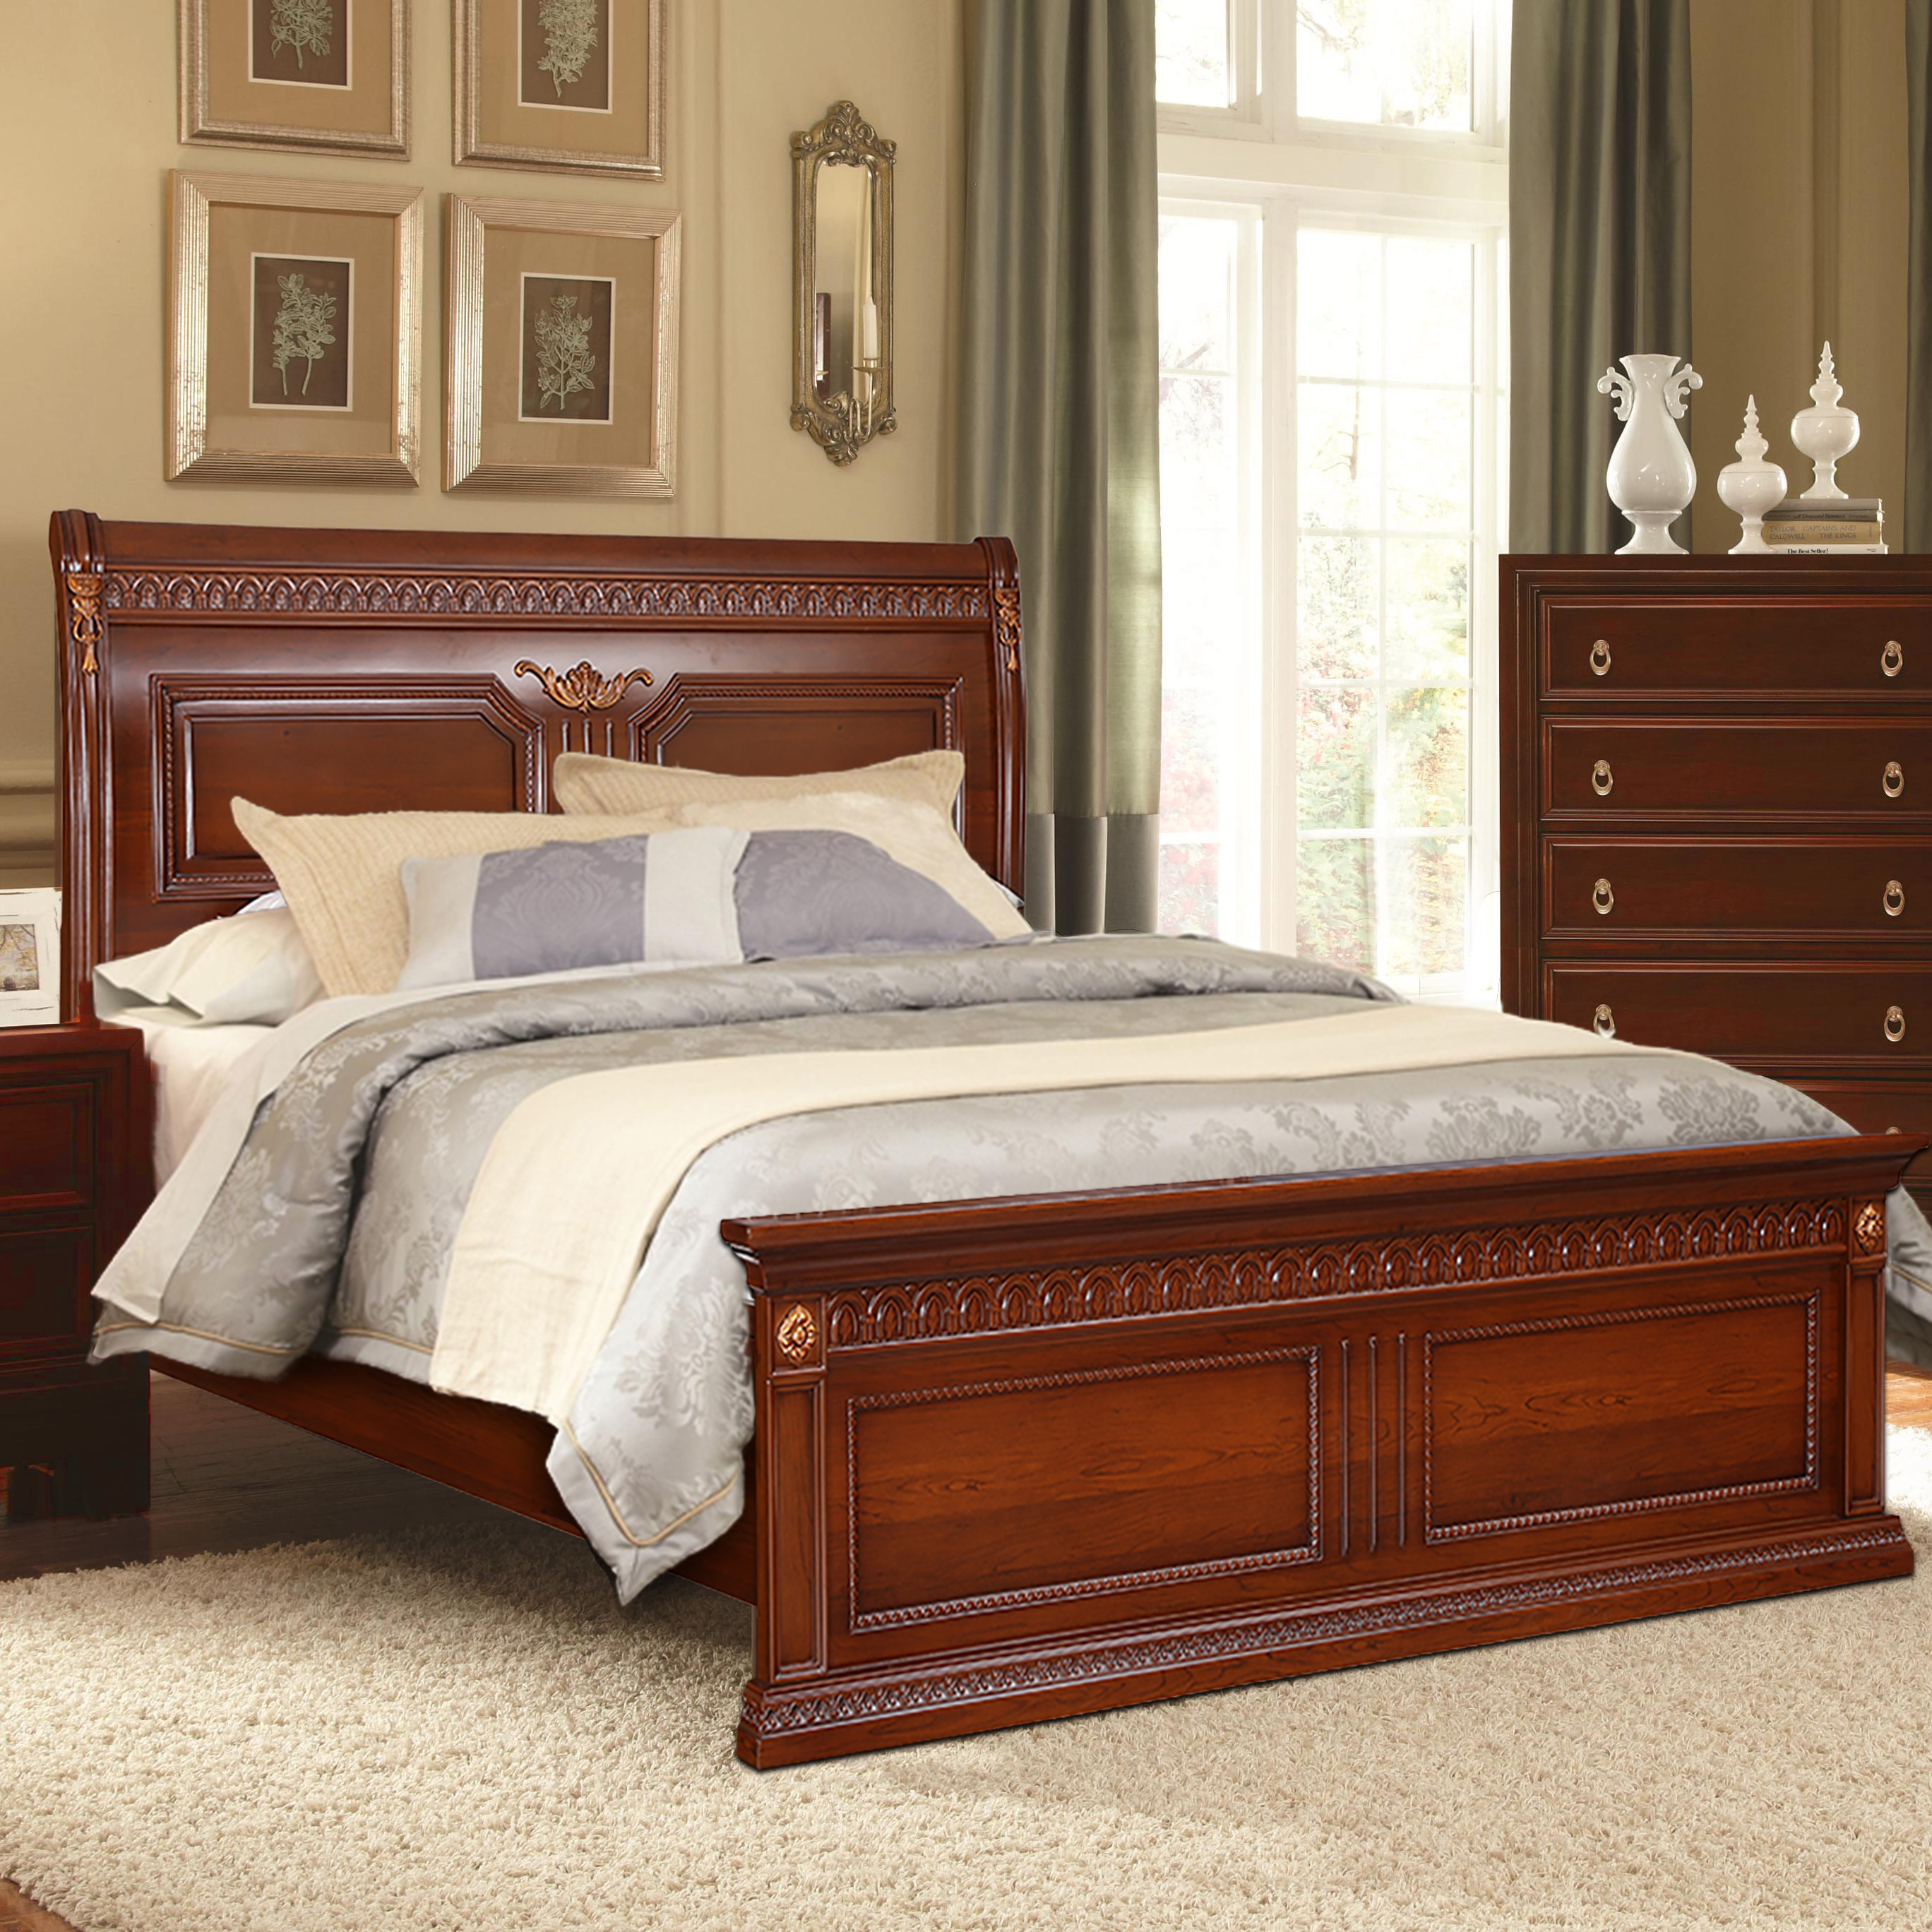 Morrison Engineered Wood Hydraulic Storage King Size Bed in Red Cherry Colour by HomeTown